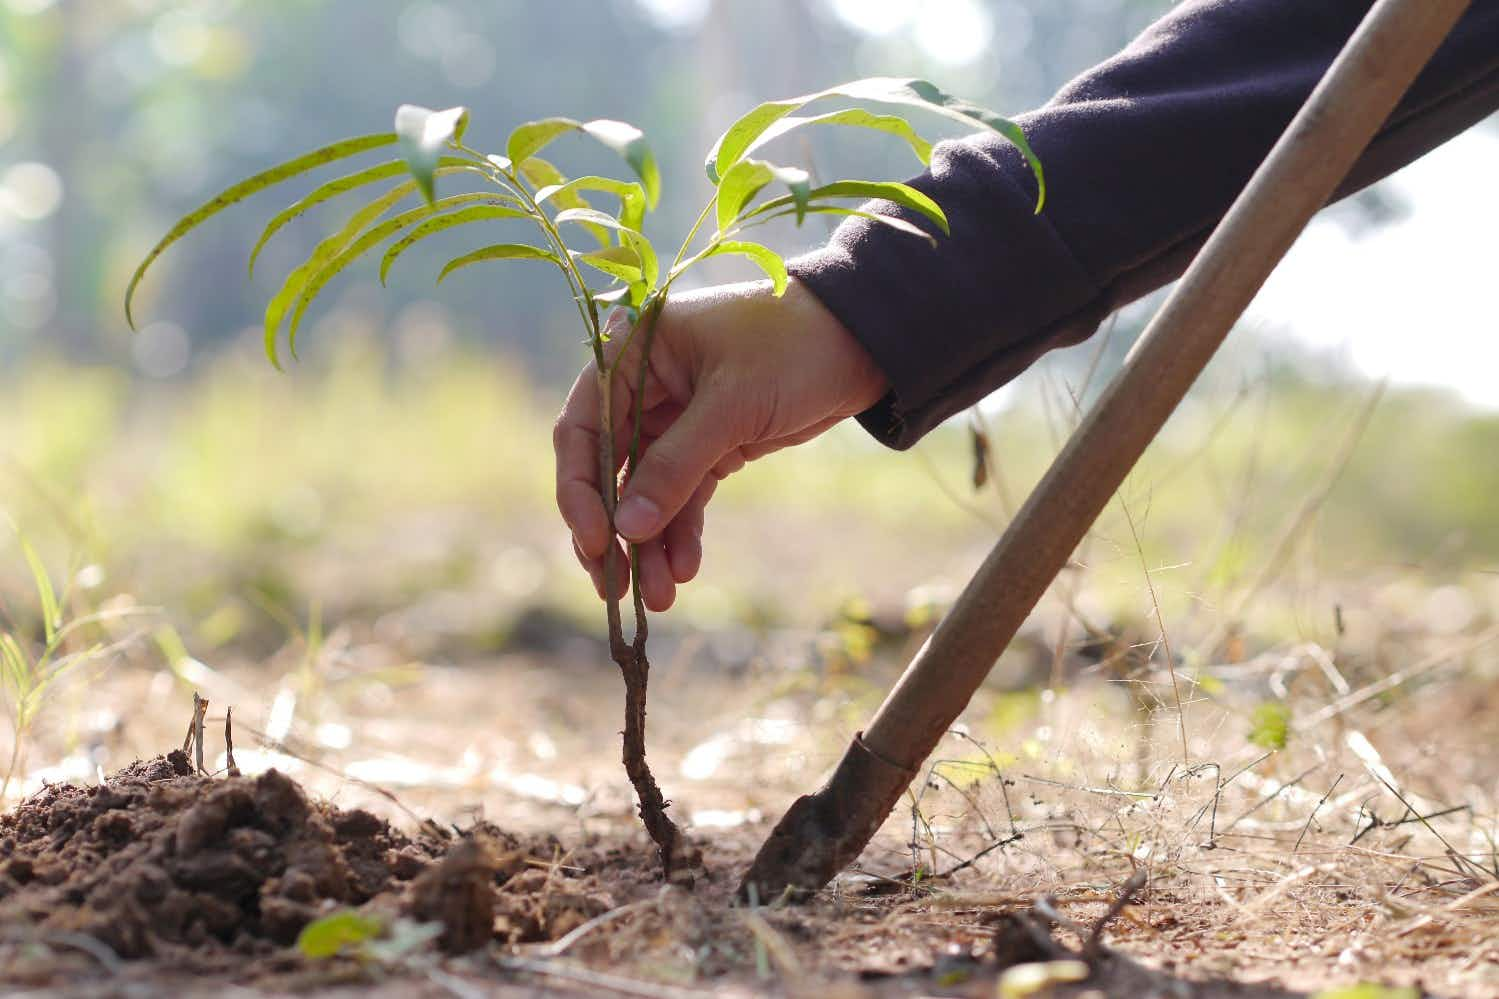 One dedicated man has planted a tree every day since 1979 to create a forest in India